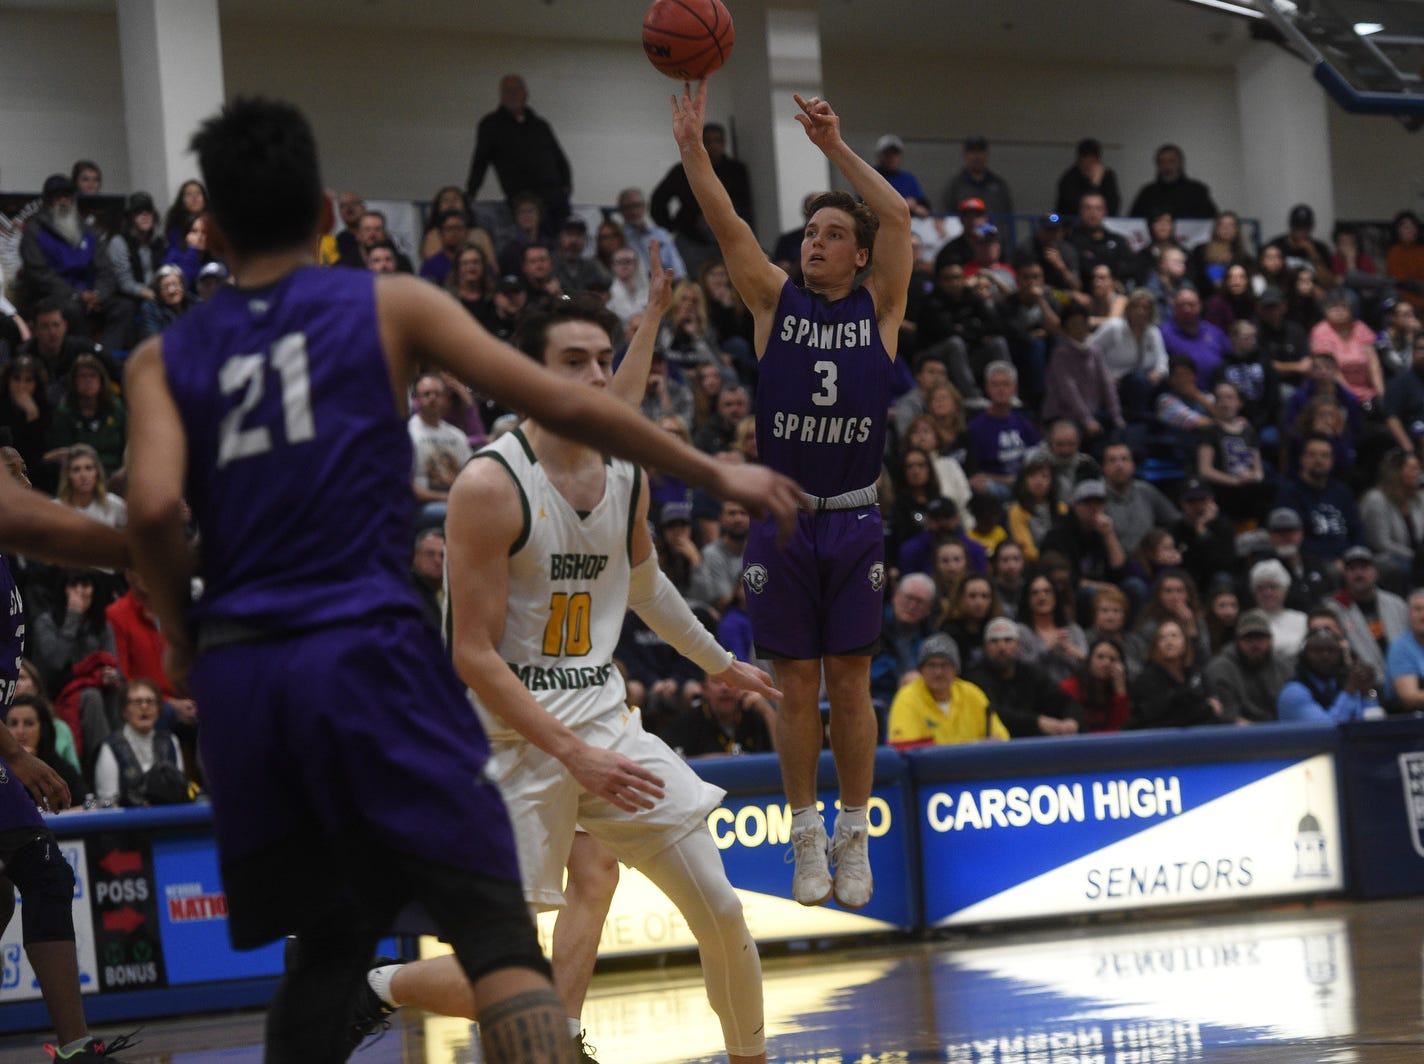 Bishop Manogue takes on Spanish Springs during the Northern Region Basketball Championship game in Carson City on Feb. 23, 2019.